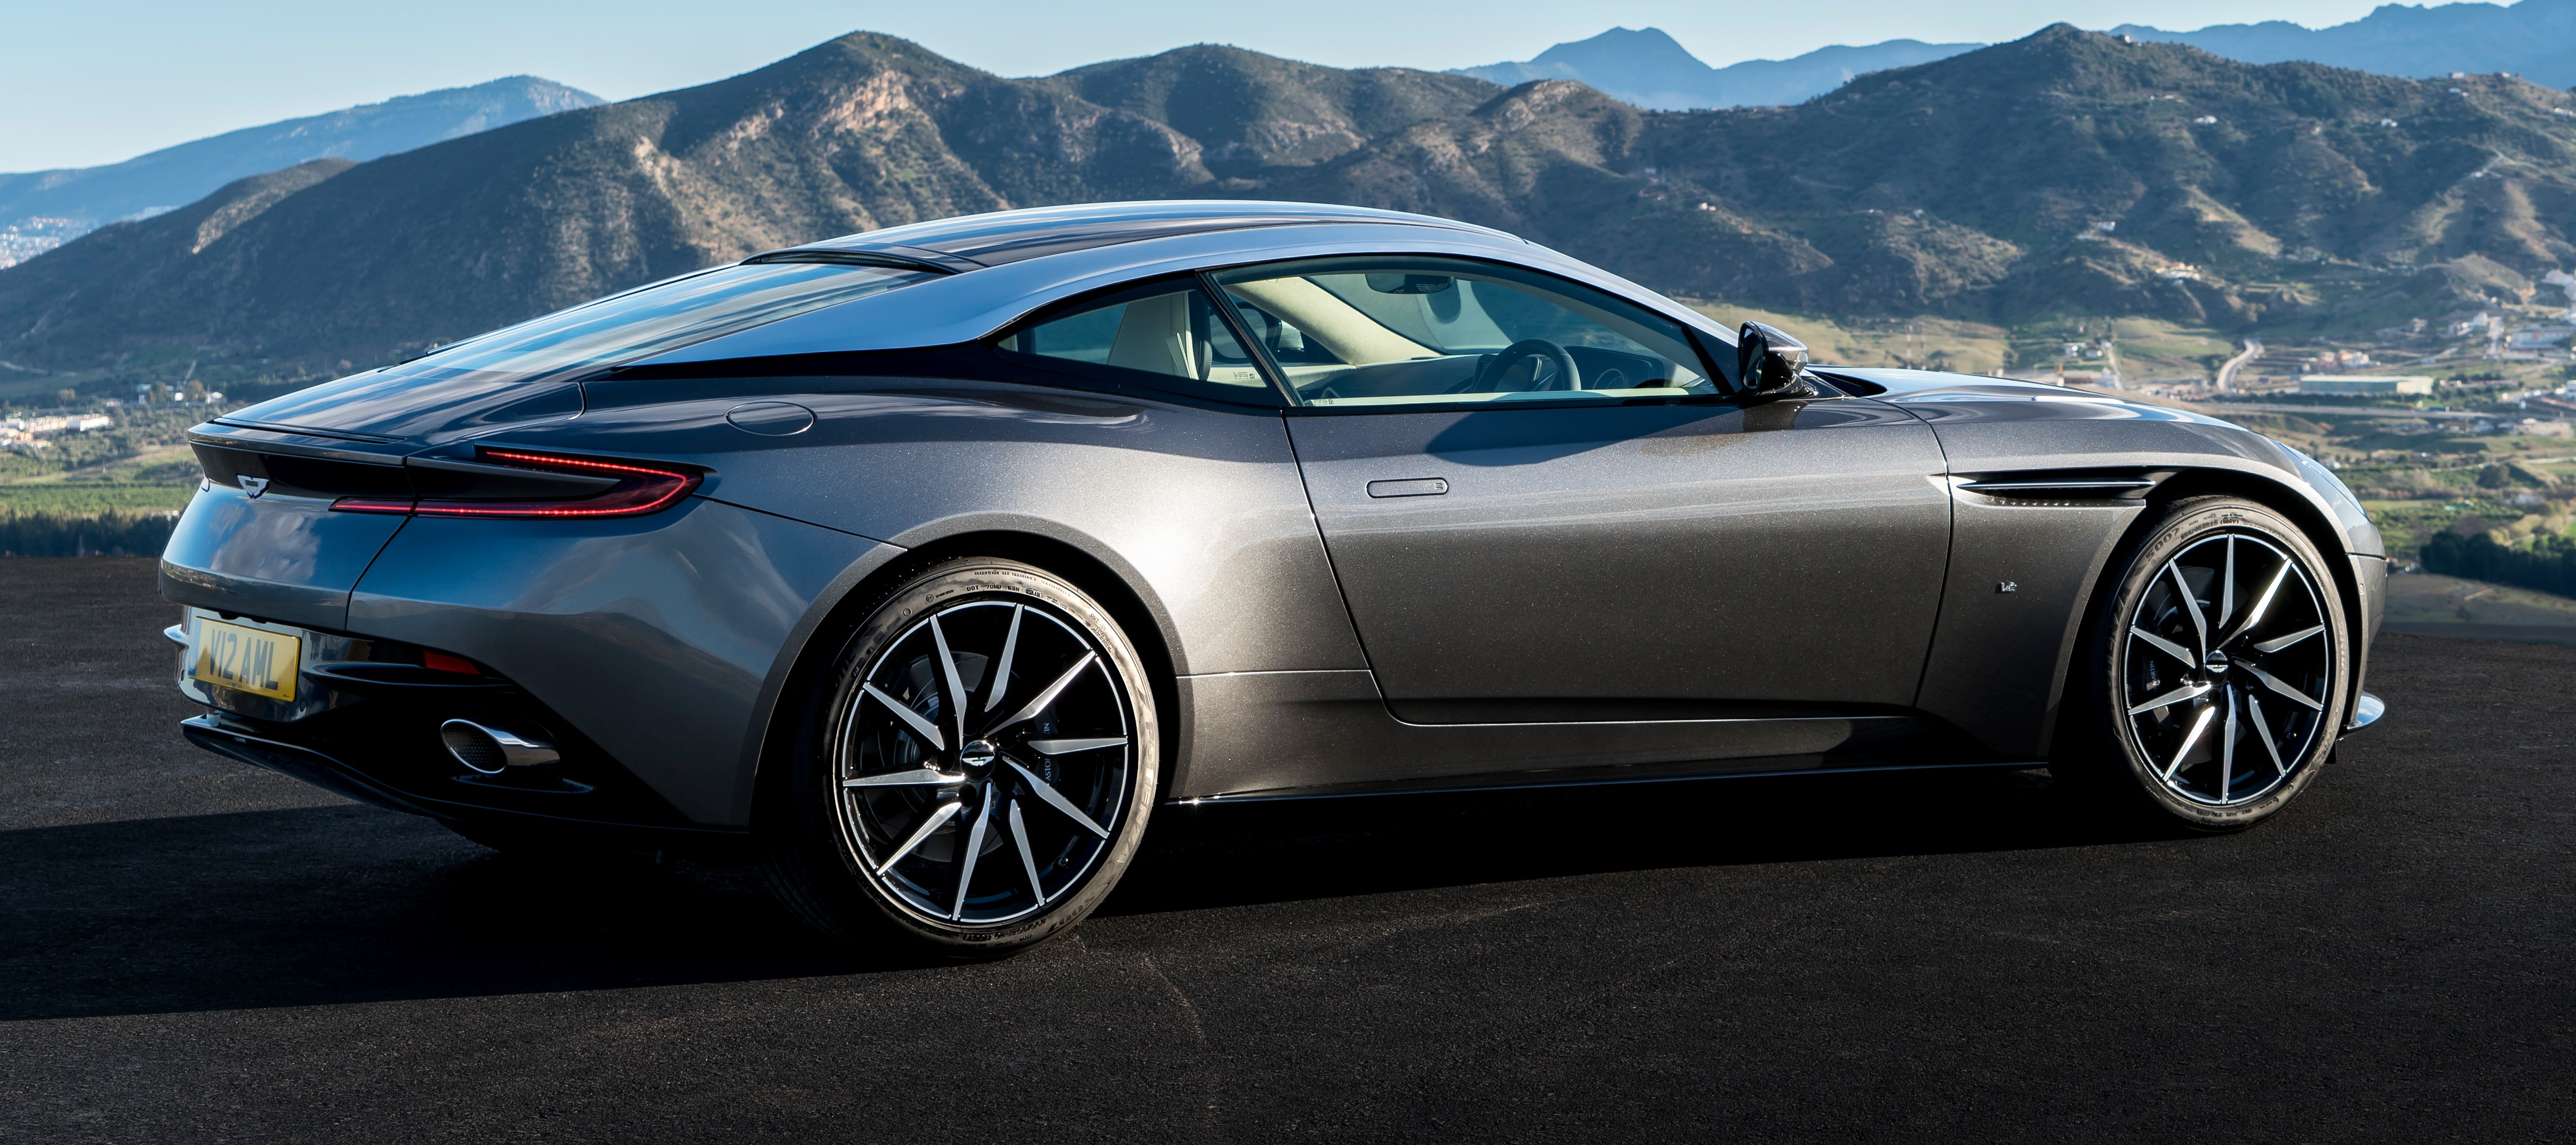 2016 Aston Martin Db9 Gt Volante C 72 furthermore Photos in addition 474372 Tuning Mercedes Cls 63 Amg Black Bison Edition Wald International together with Koenigsegg Legera Is A Baby Koenigsegg Eager To Battle The Aventador Photo Gallery 96603 as well Auto Aston Martin Others. on 2017 aston martin db11